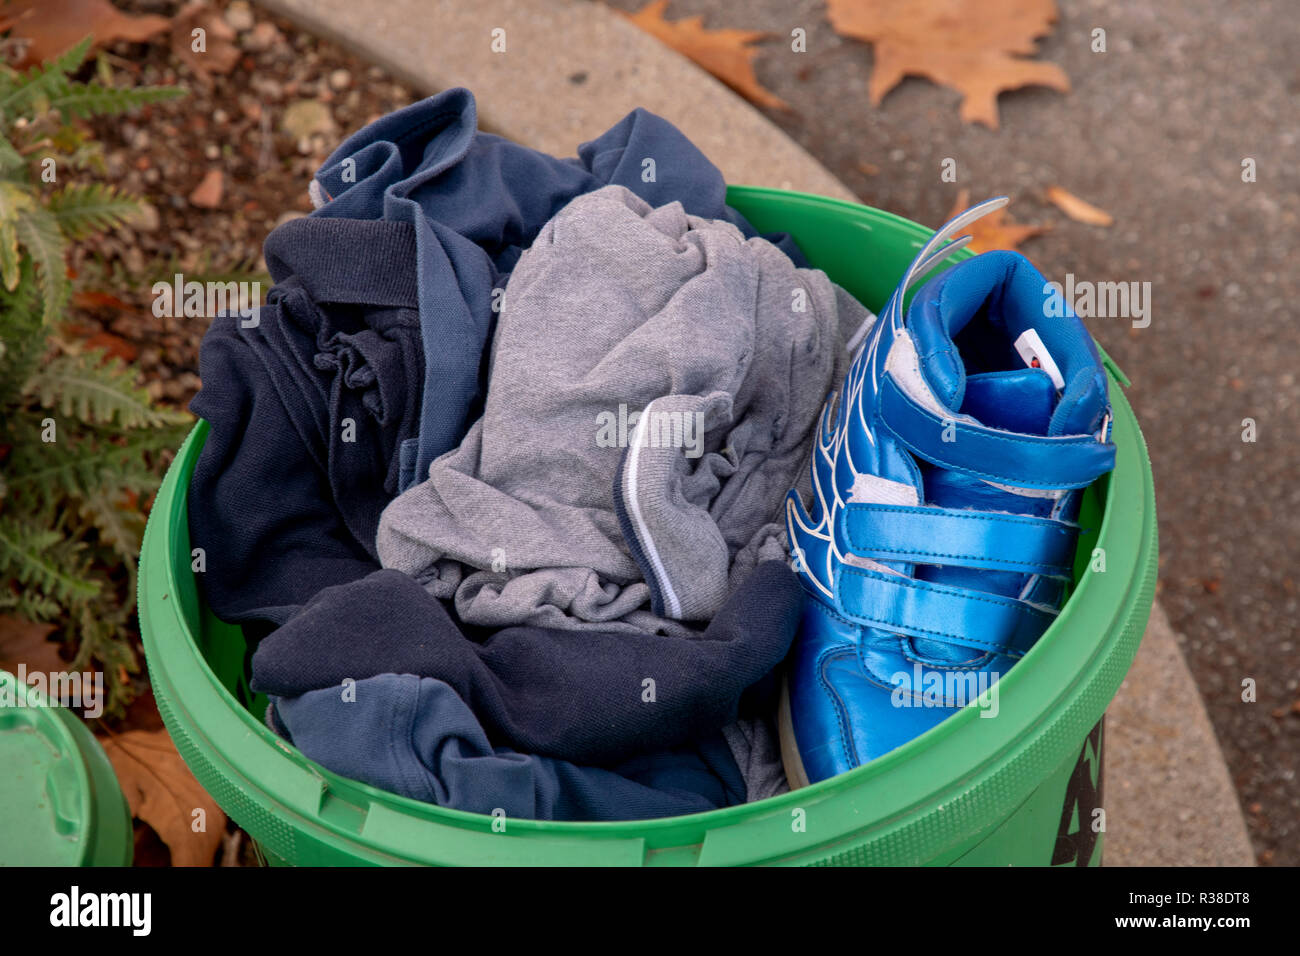 old fashion collection in a green bucket at the road - Stock Image